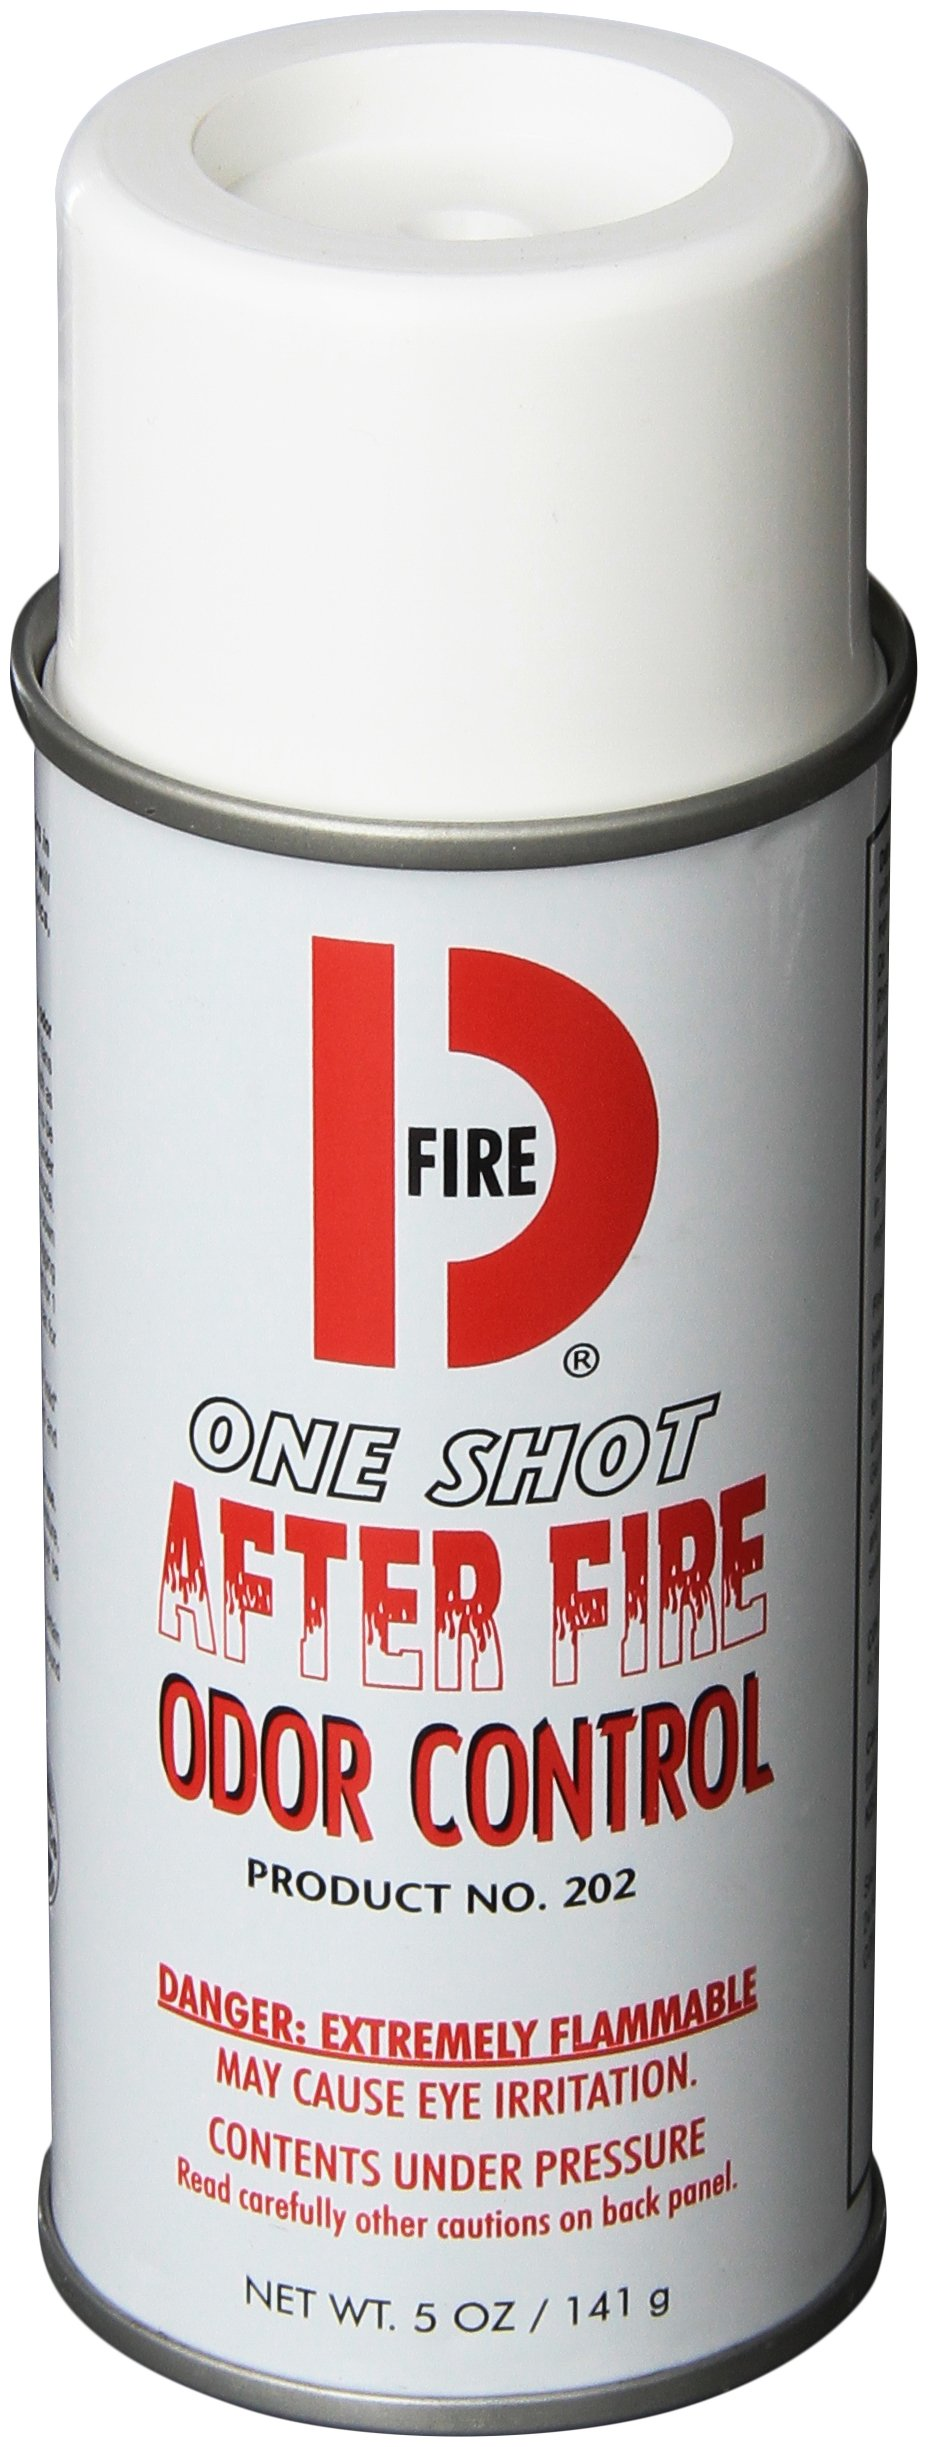 Big D 202 Fire D One Shot After Fire Odor Control Fogger, 5 oz (Pack of 12) - Kills odors from fire, flood, decomposition, cigarettes, musty smells - Ideal for use in cars, property management, hotels by Big D (Image #2)